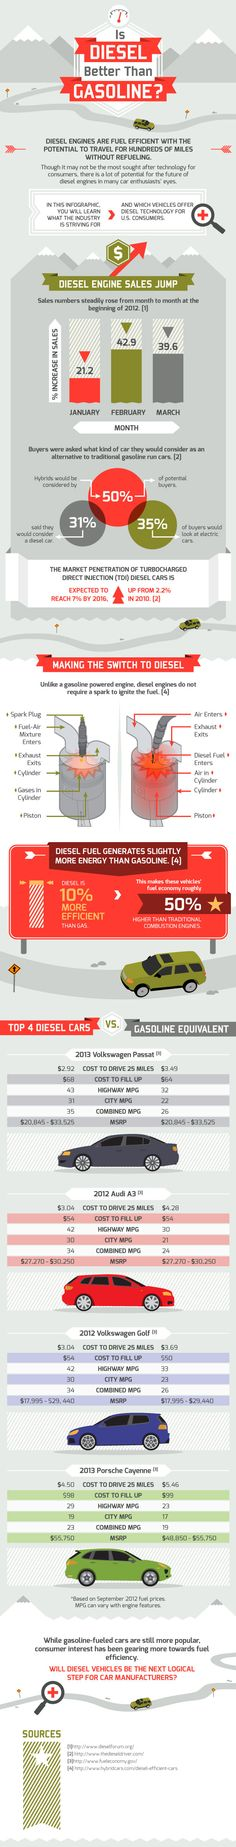 Diesel engines are fuel efficient with the potential to travel for hundreds of miles with out refueling. Though it may not be the most sough after technology for consumers, there is a lot of potential for the future of diesel engines in many car enthusiasts eyes.